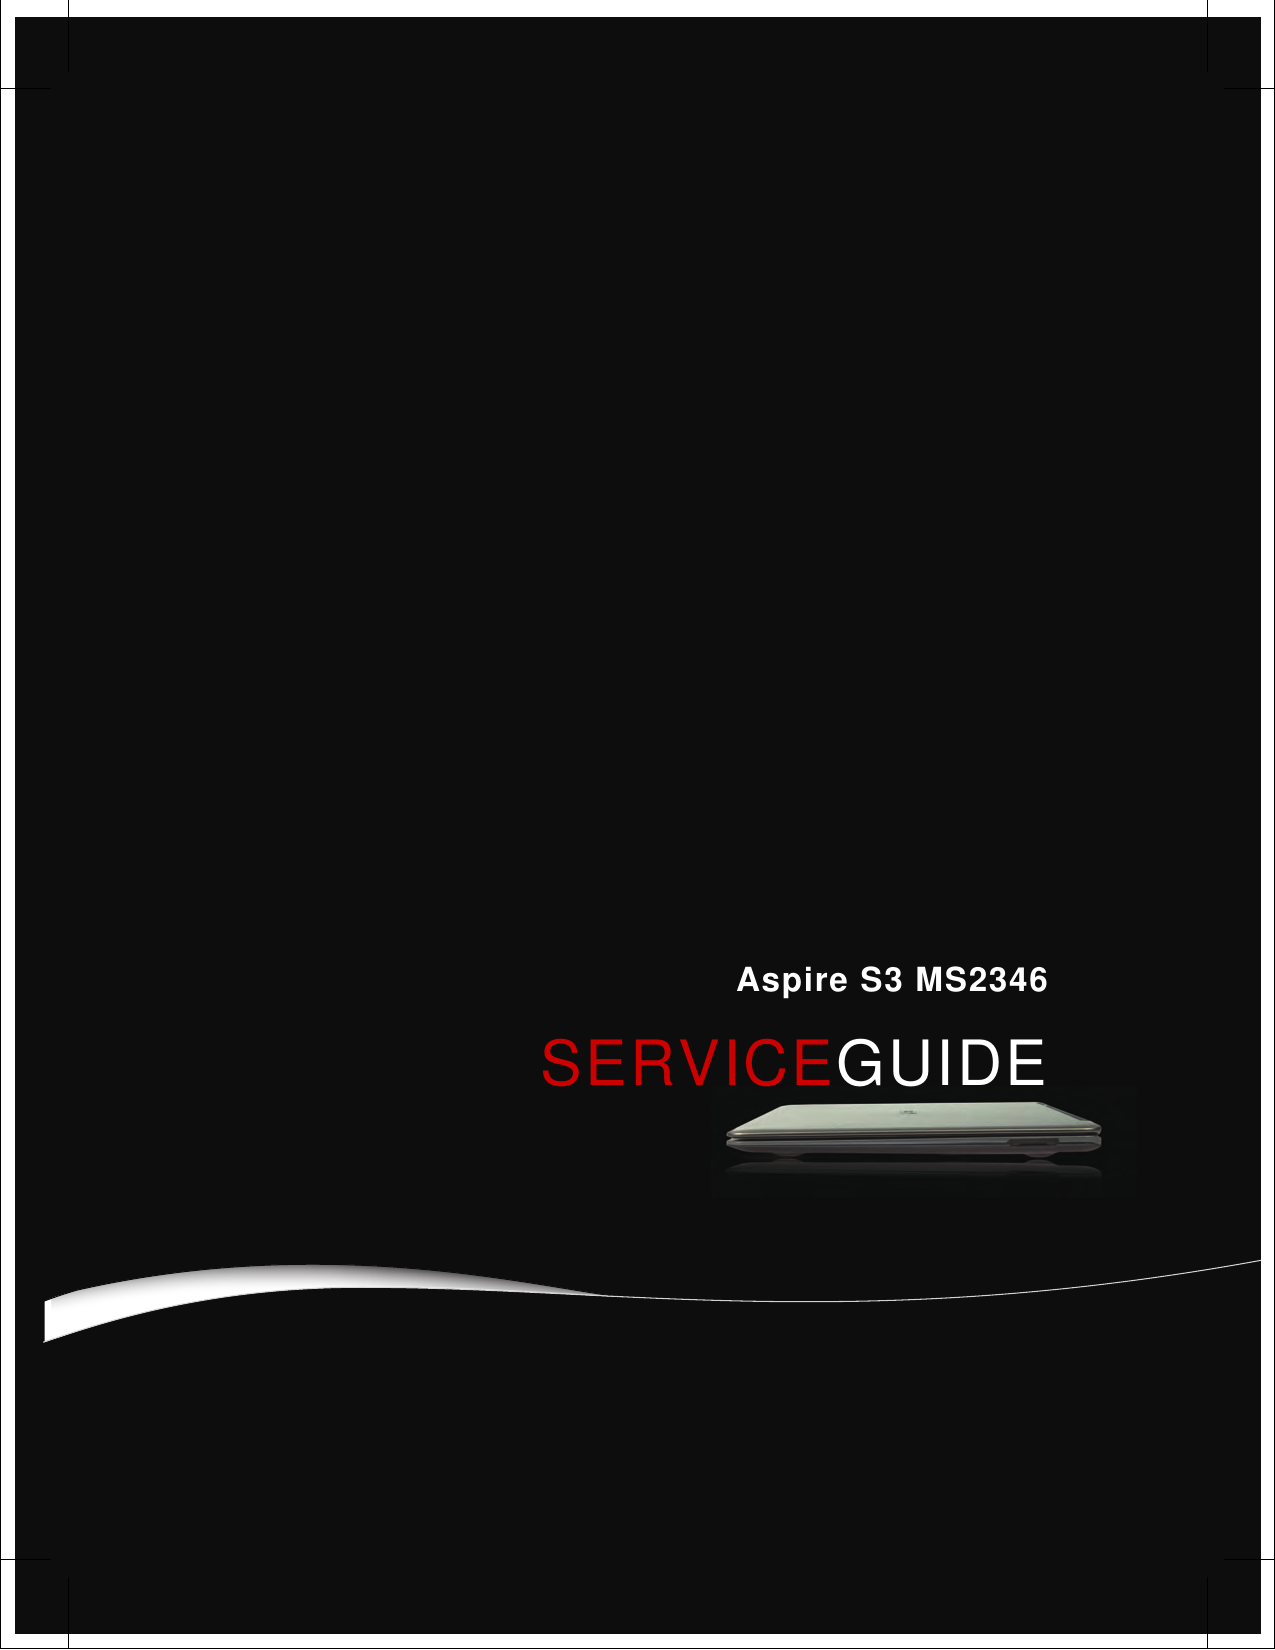 Acer S3 Ms2346 Users Manual Hm2 Service Guide Sm30 Microphone Wiring Diagram